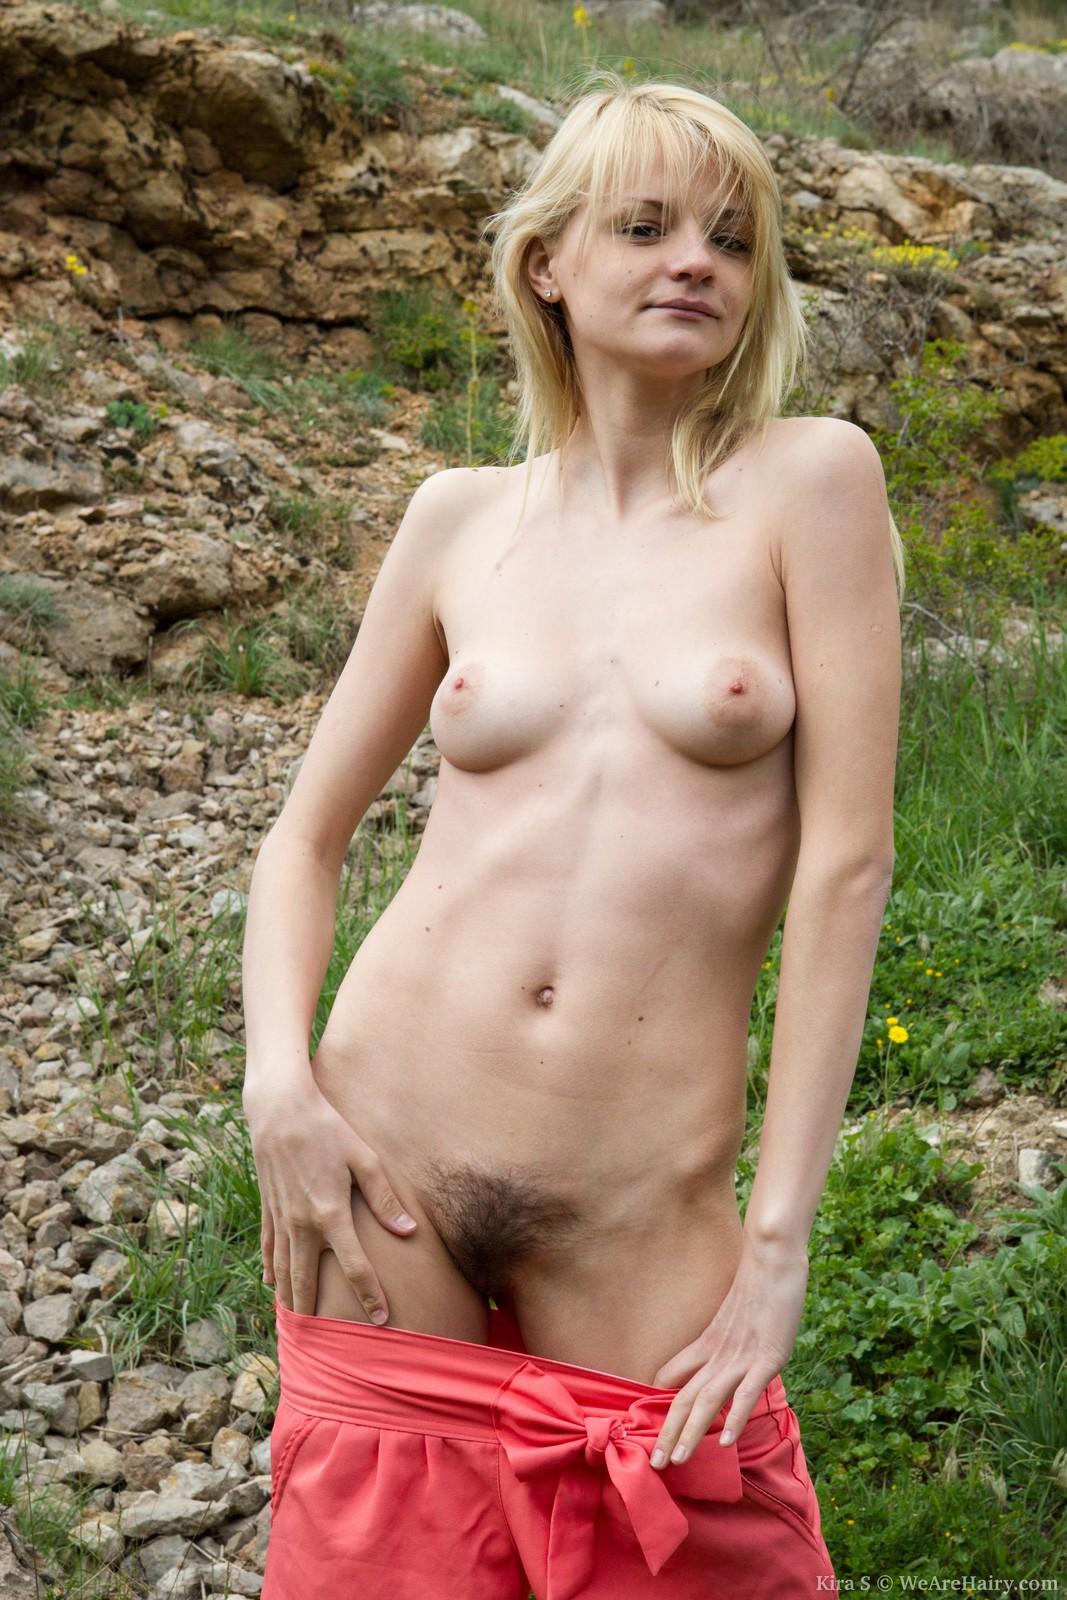 kira s plays with her hairy pussy outdoors